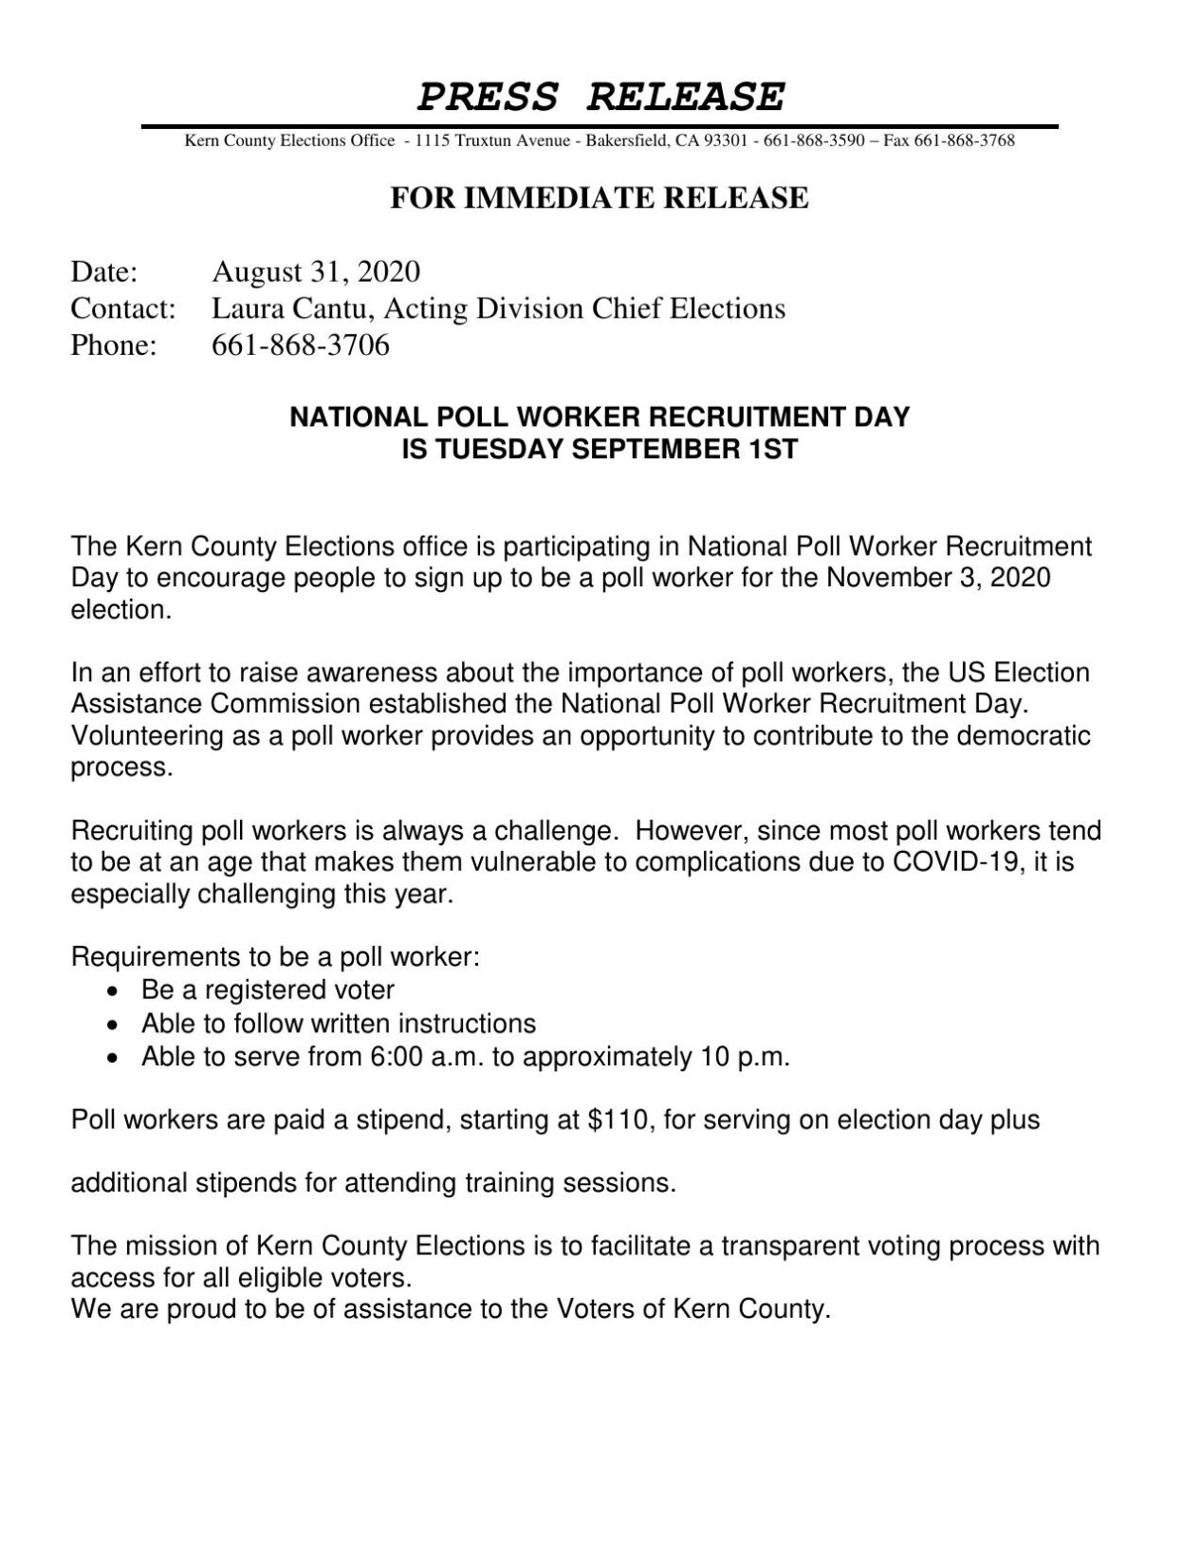 NATIONAL POLL WORKER RECRUITMENT DAY IS TUESDAY SEPTEMBER 1ST